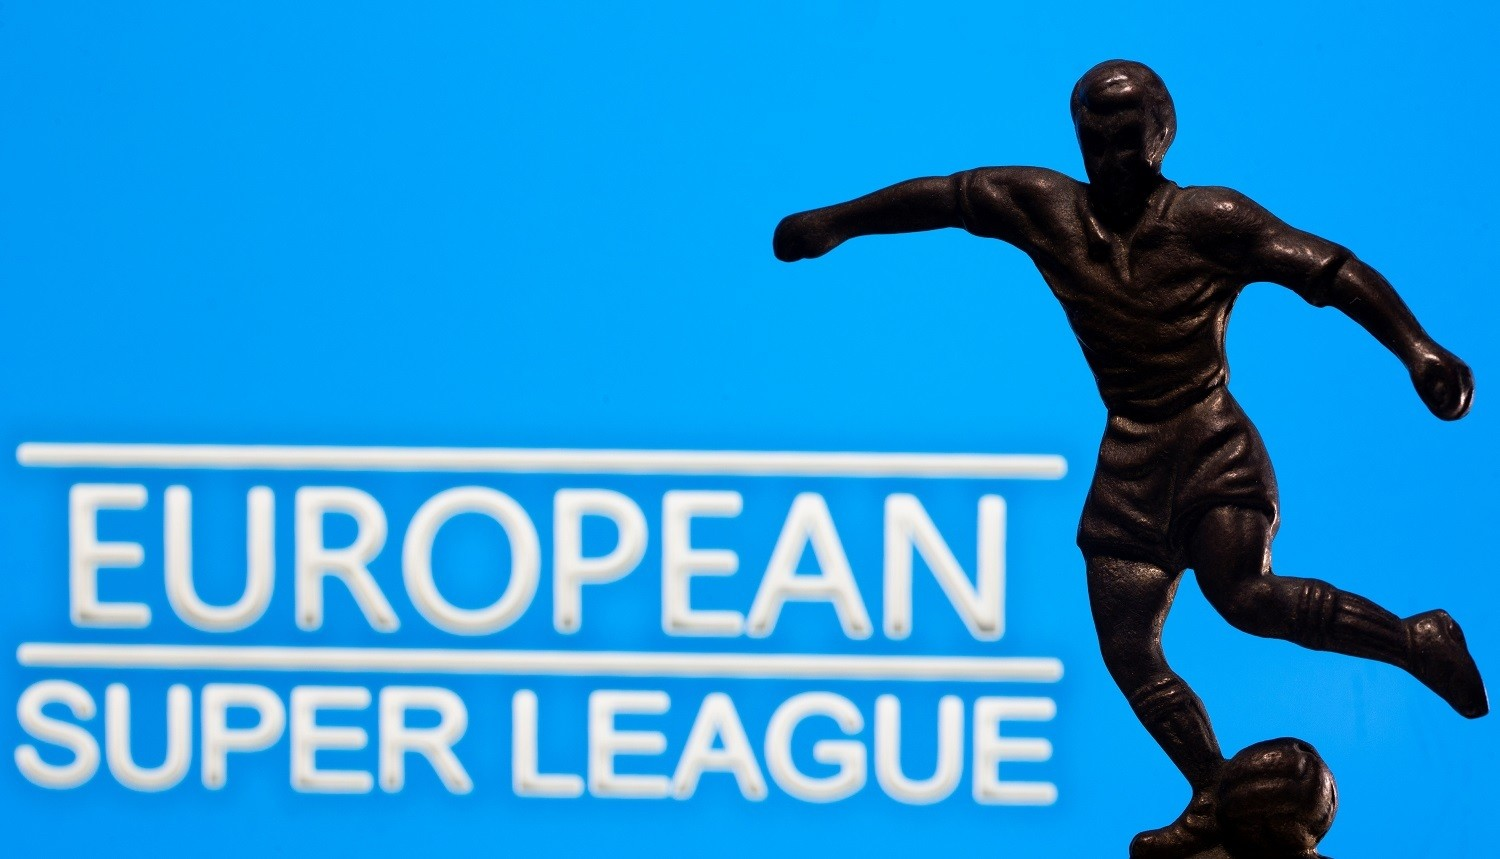 """A metal figure of a football player with a ball is seen in front of the words """"European Super League"""" in this illustration taken April 20, 2021. REUTERS/Dado Ruvic/Illustration - RC2QZM99RK4T"""